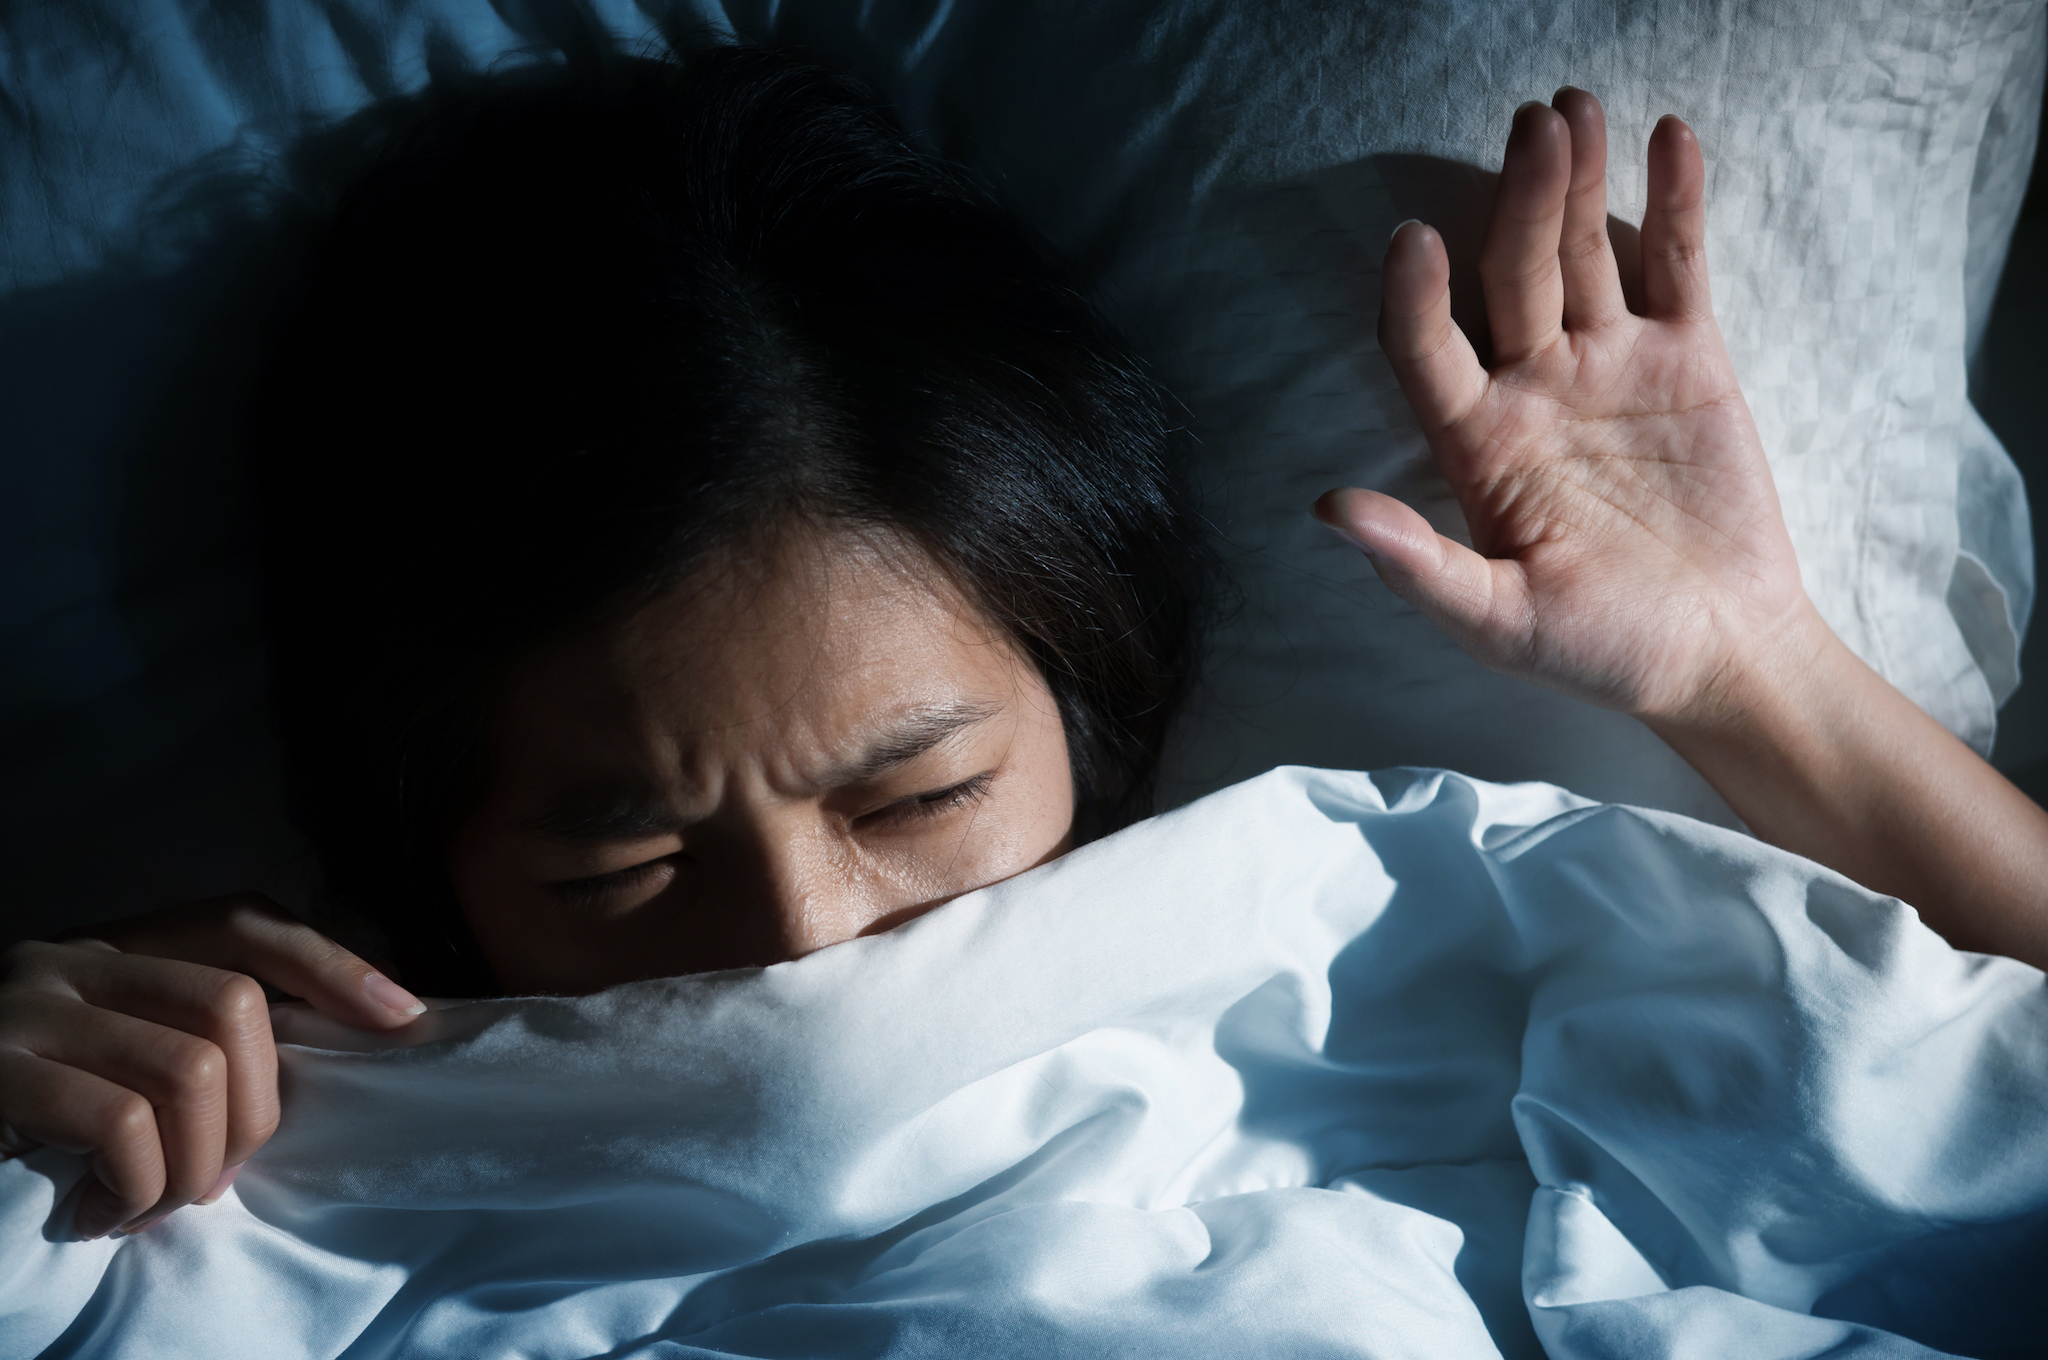 A new study has found that going to bed angry dwelling on negative memories will make it easier to recall those experiences later on.